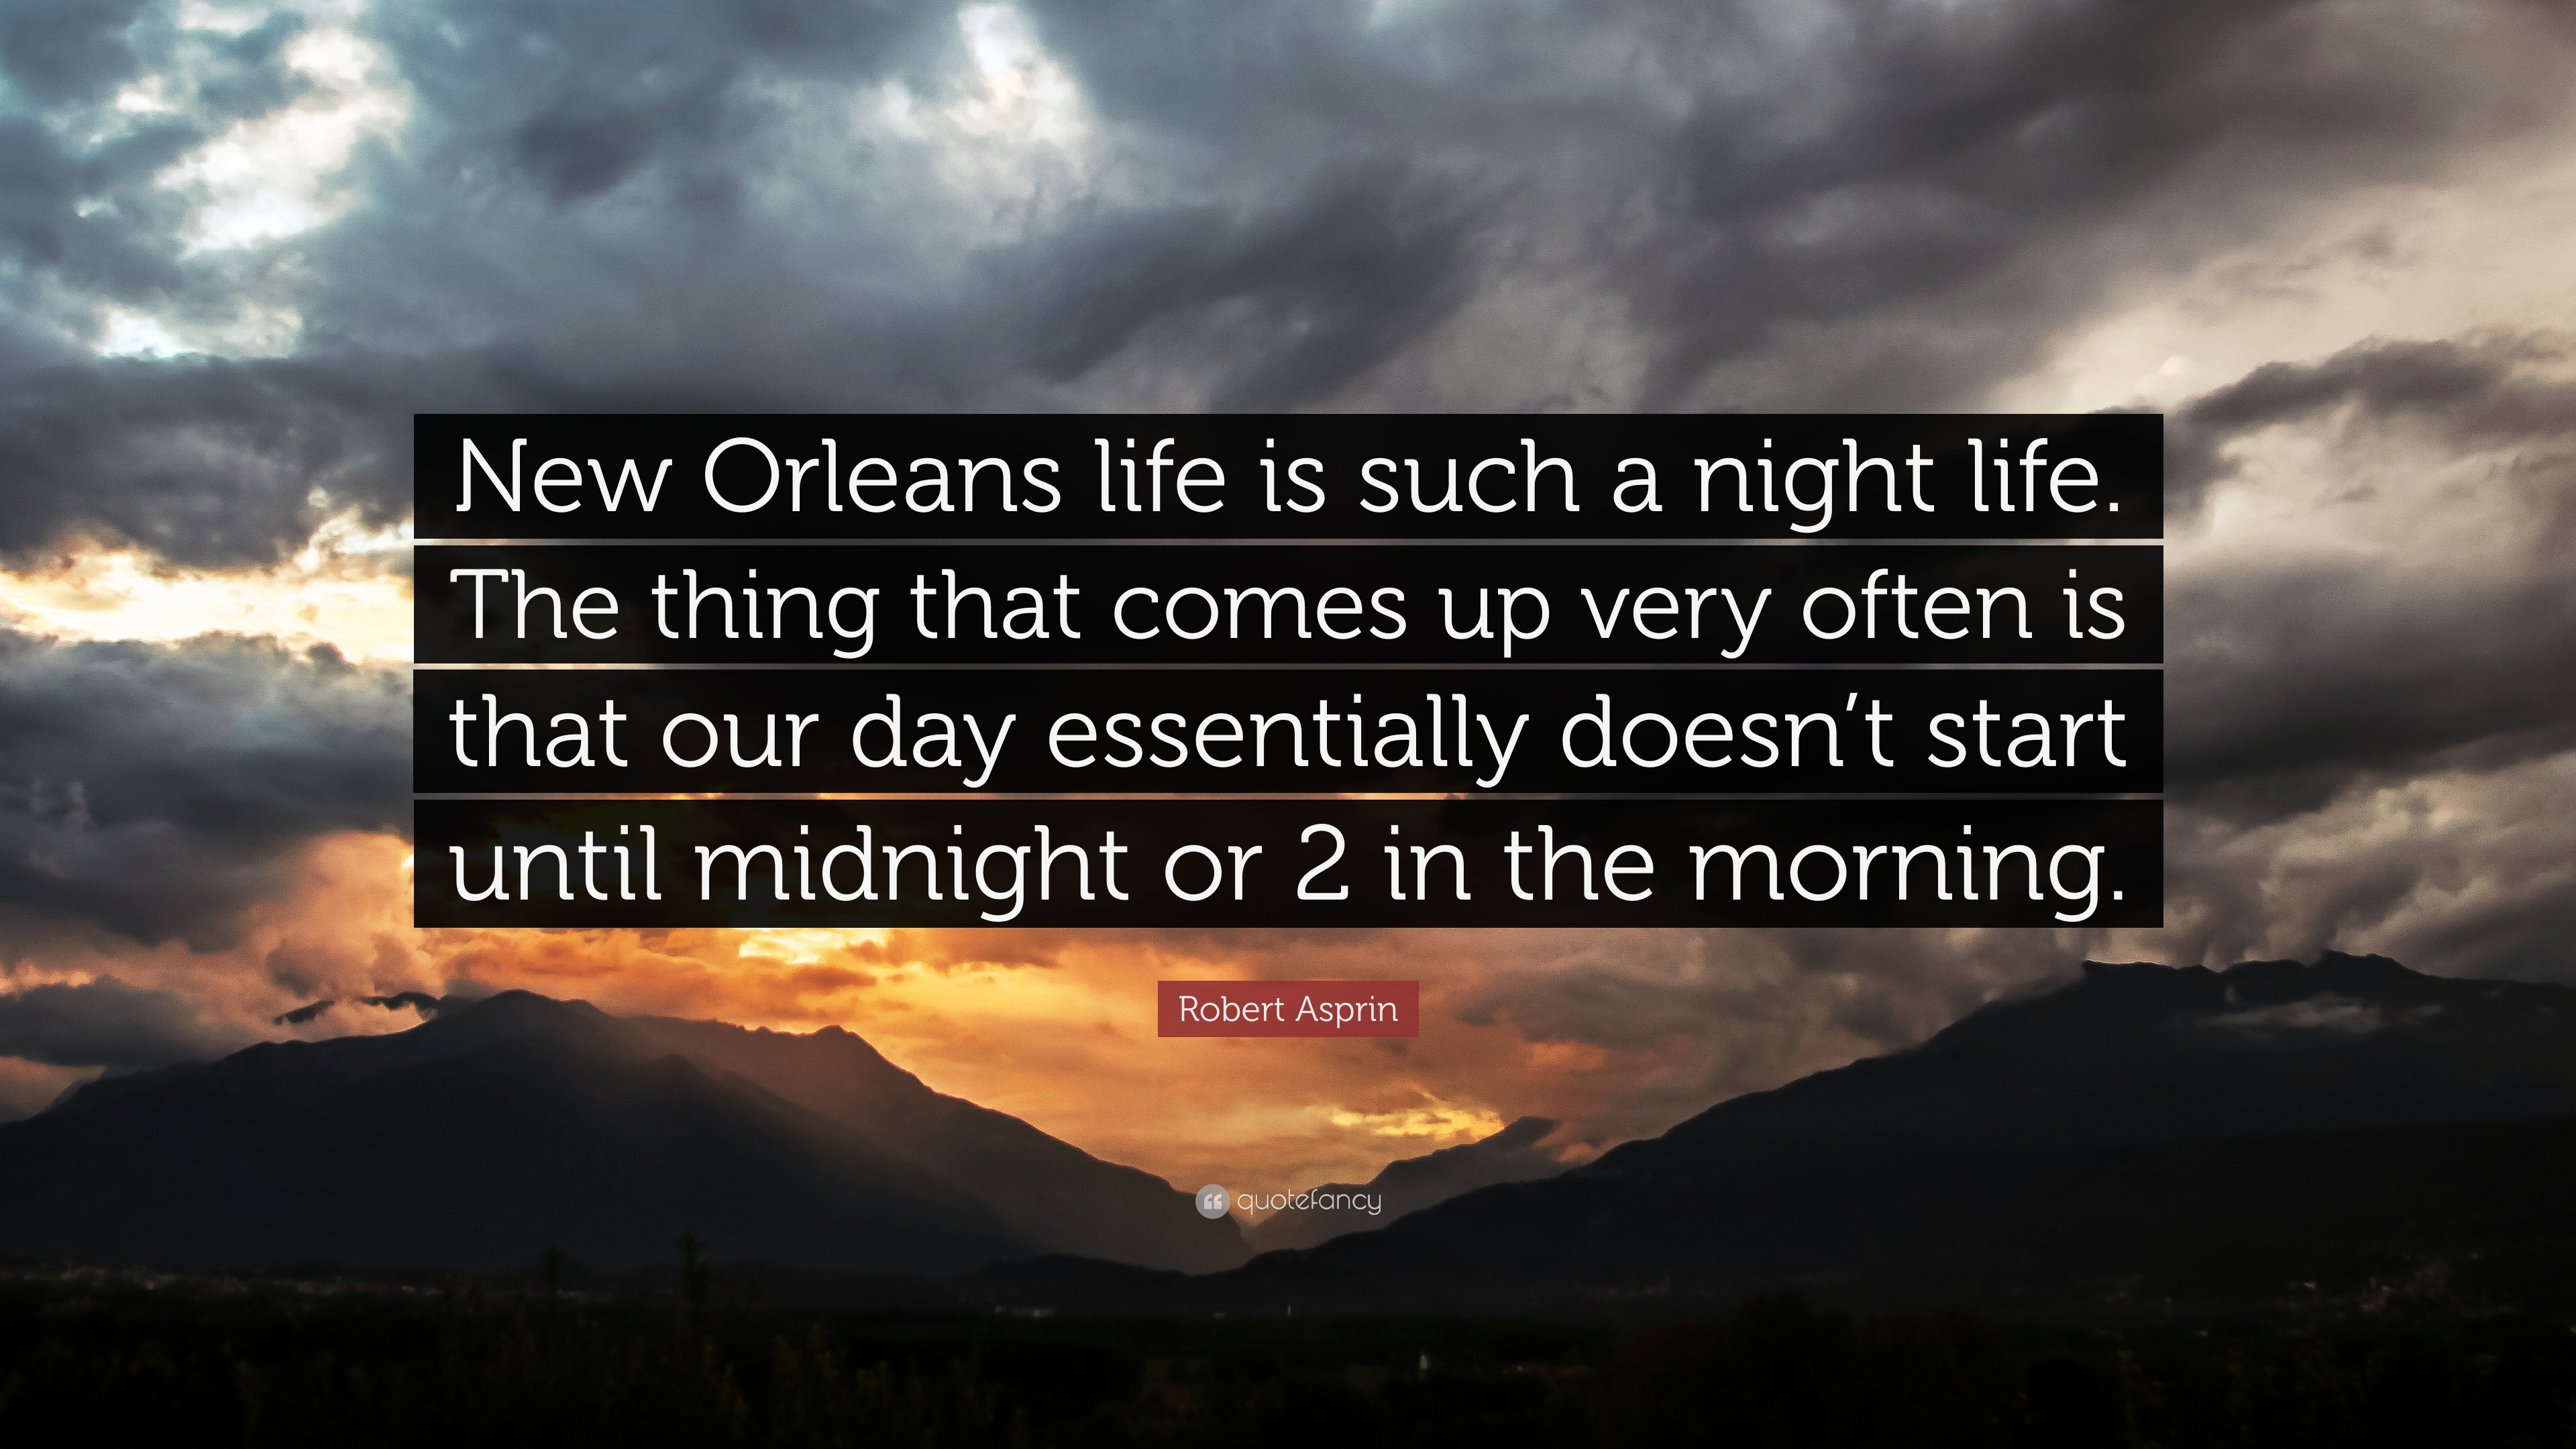 Captivating Robert Asprin Quote: U201cNew Orleans Life Is Such A Night Life. The Thing